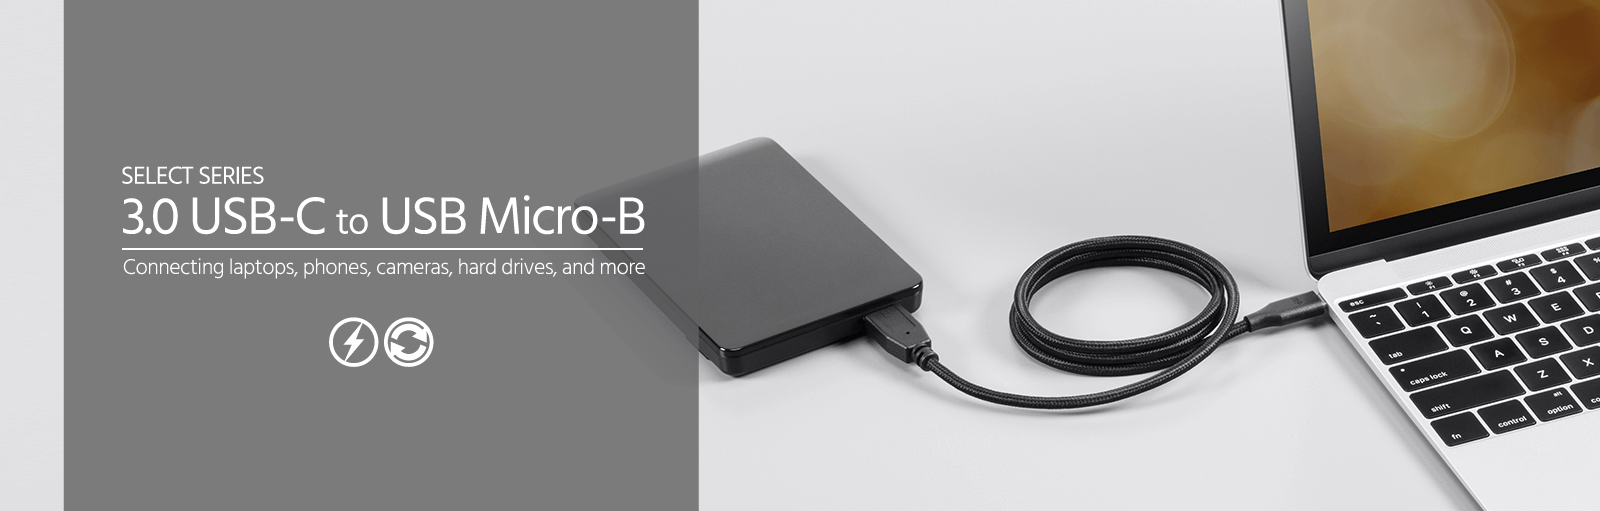 Palette Series USB 2.0 C to Micro B